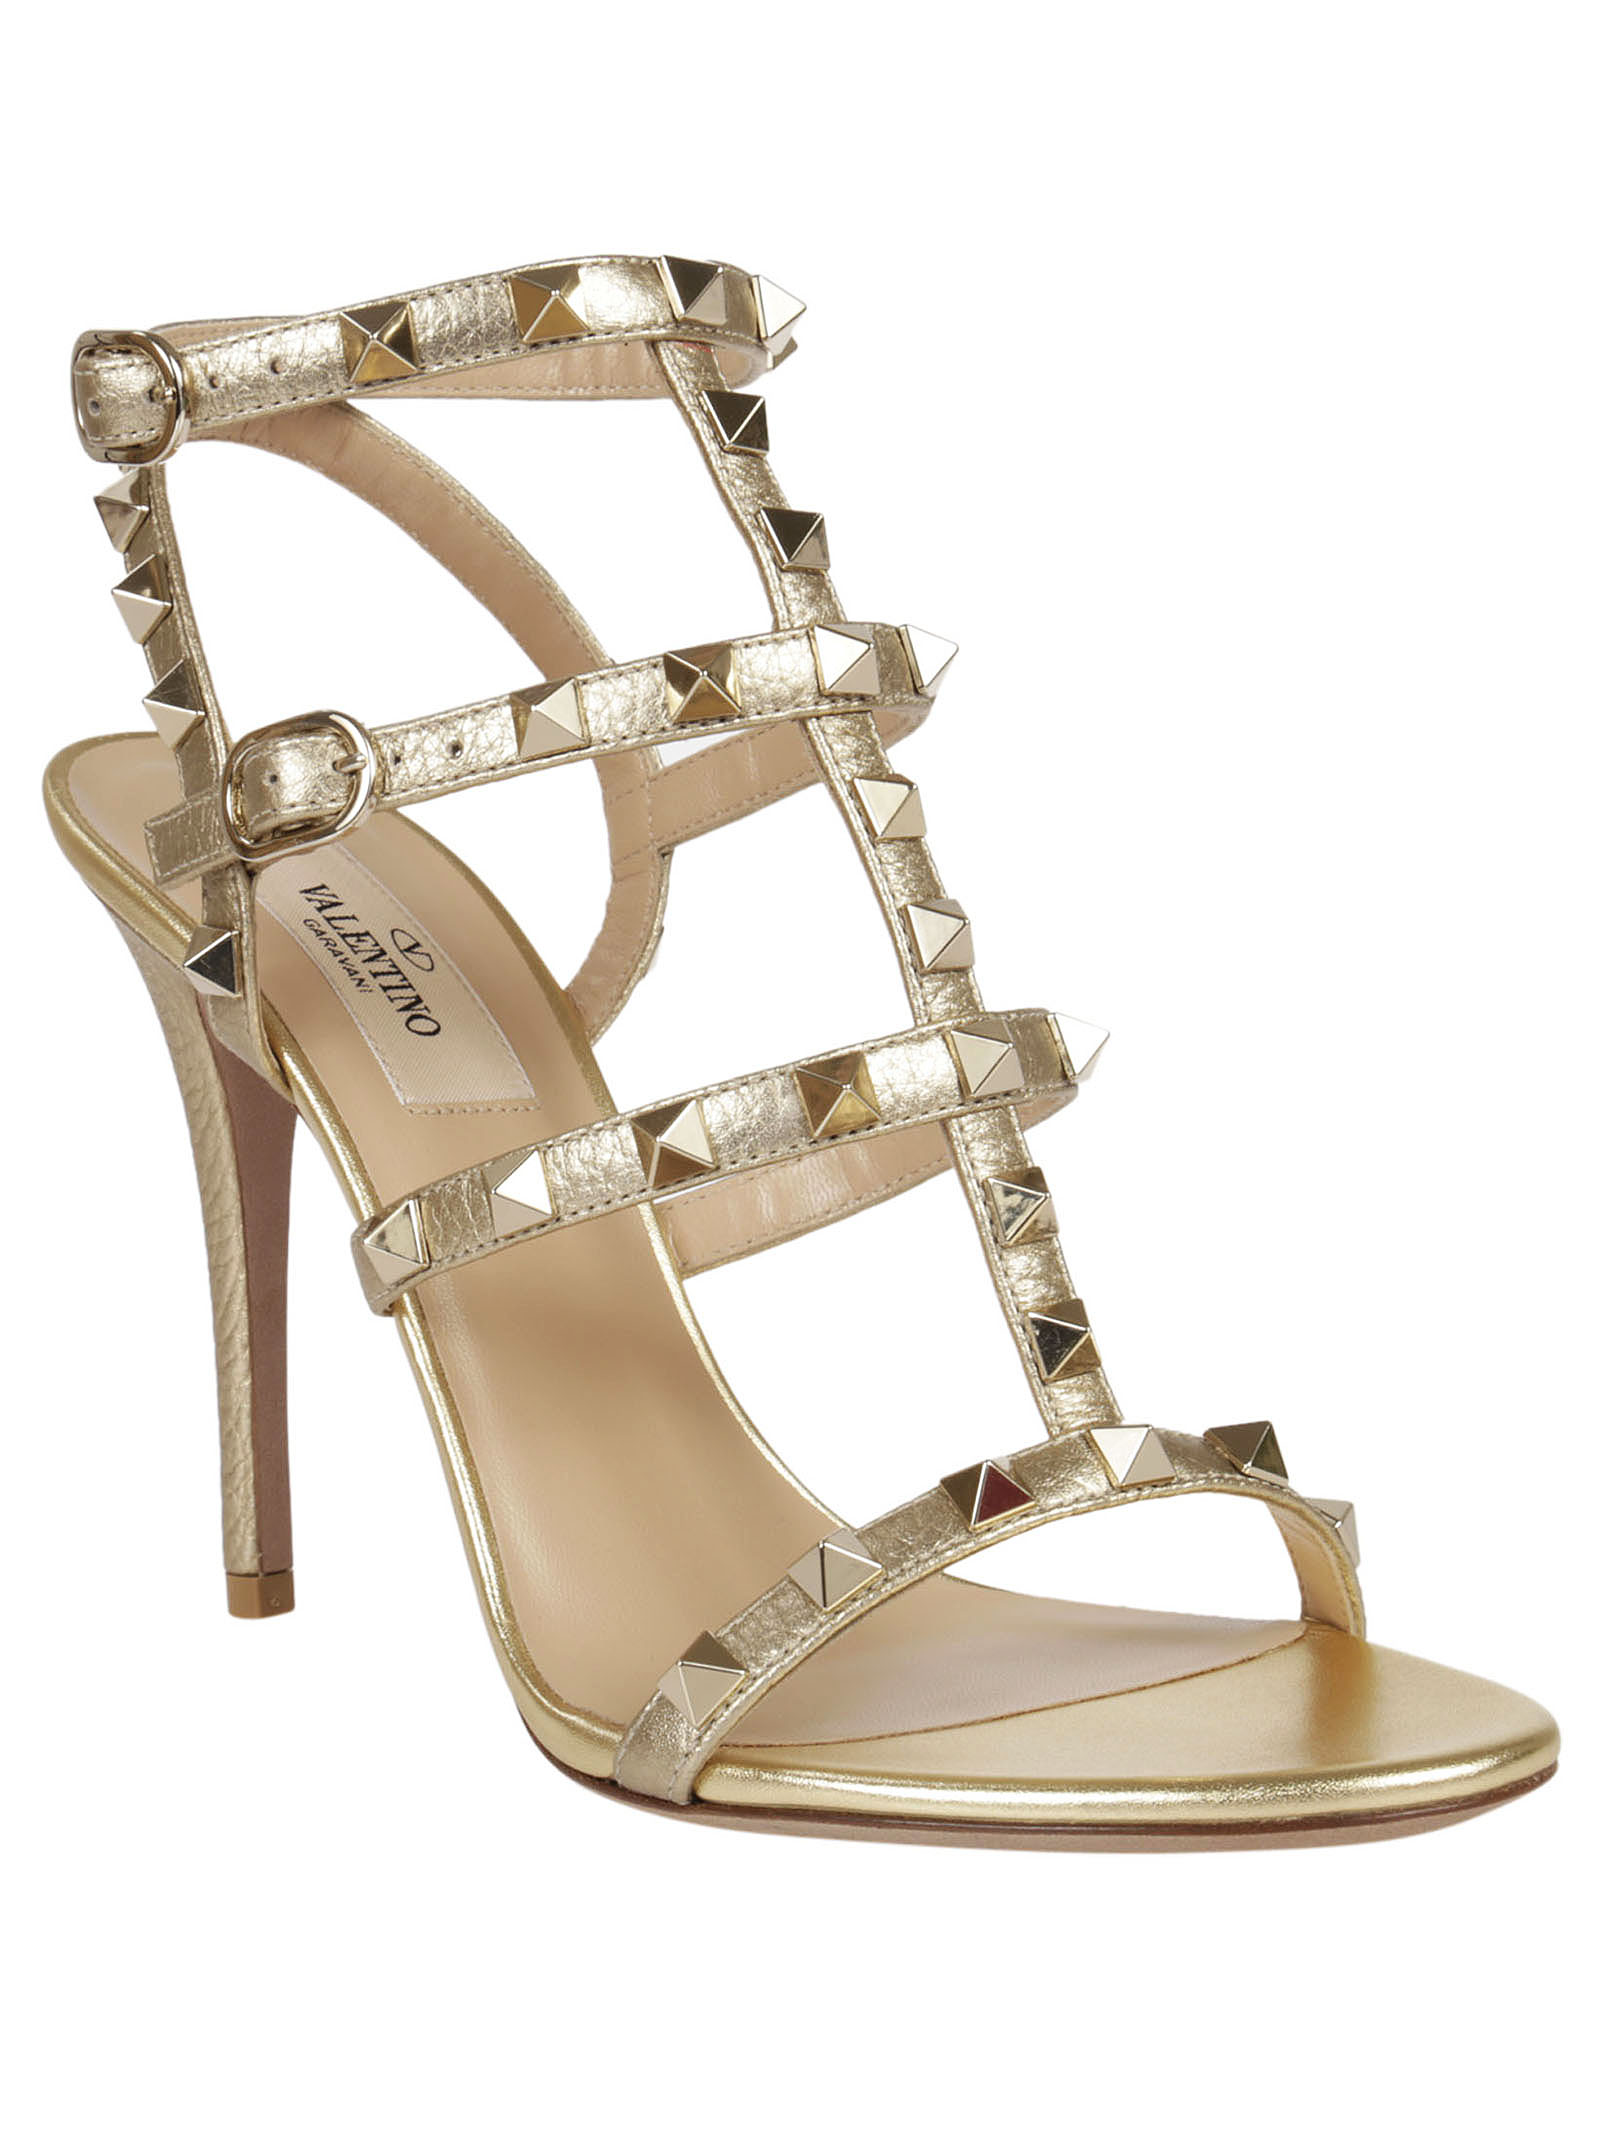 Valentino Garavani Rockstud Sandals hight heel